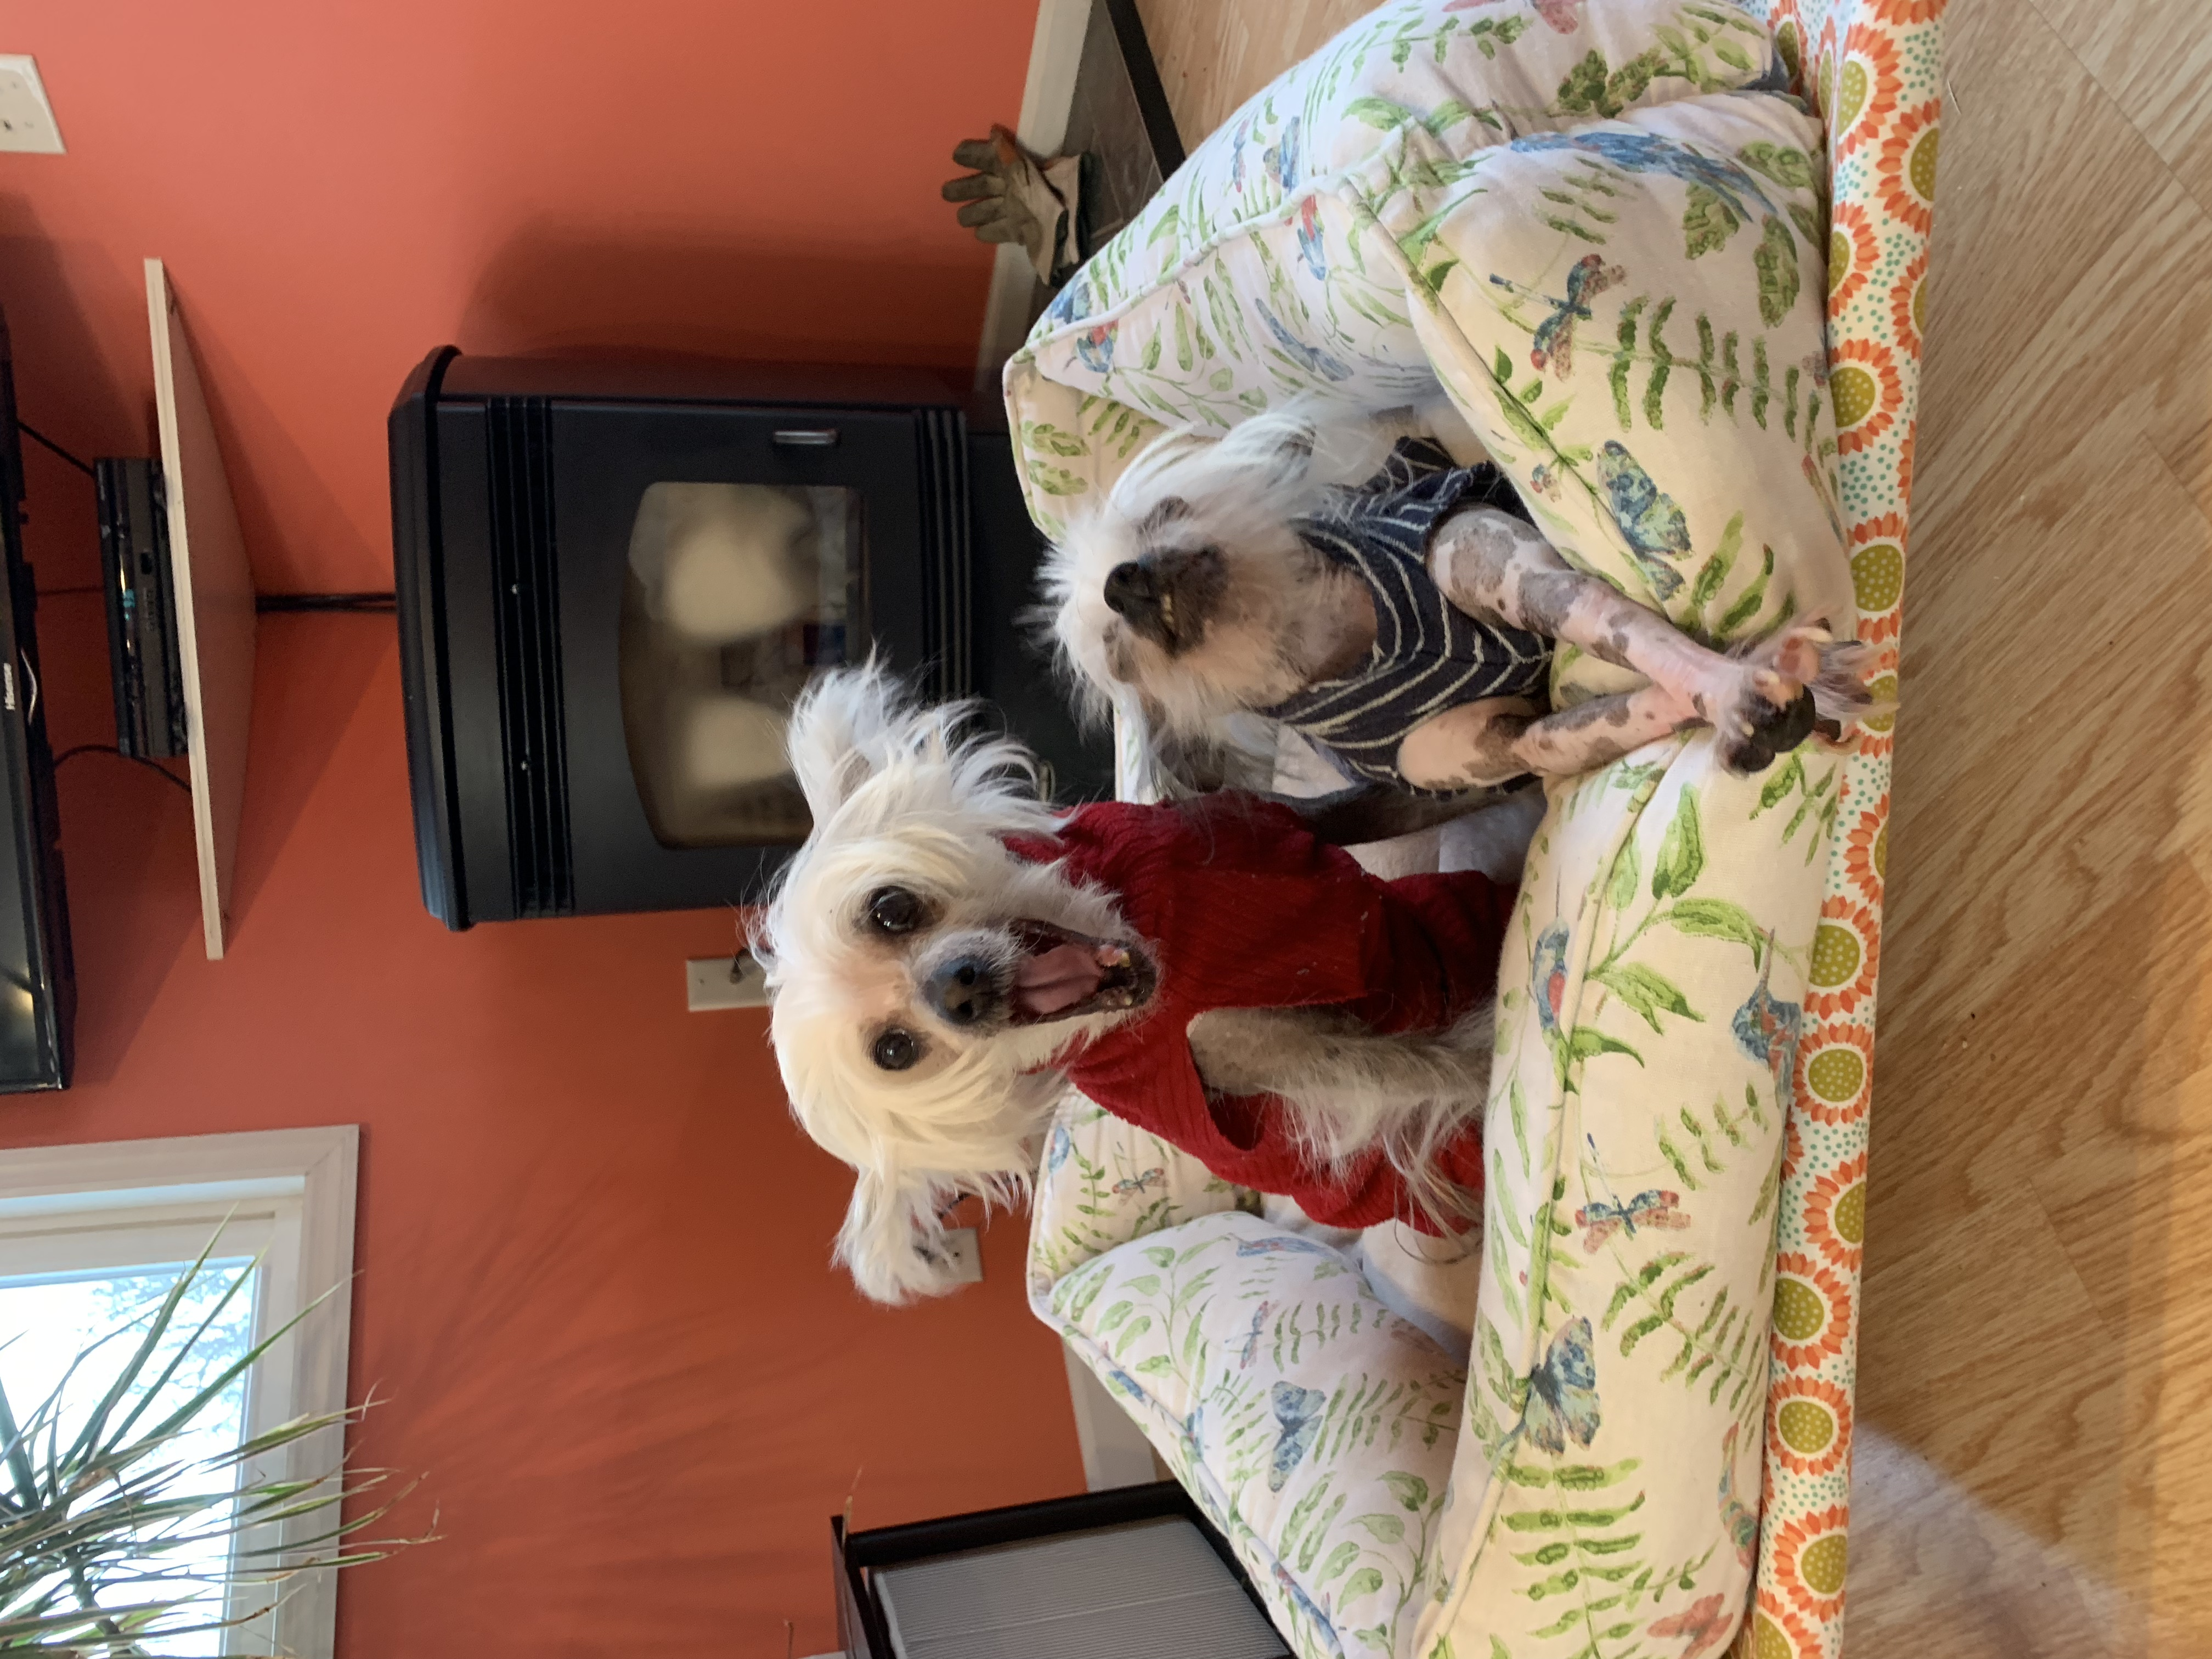 Two Chinese Crested dogs stretching and yawning